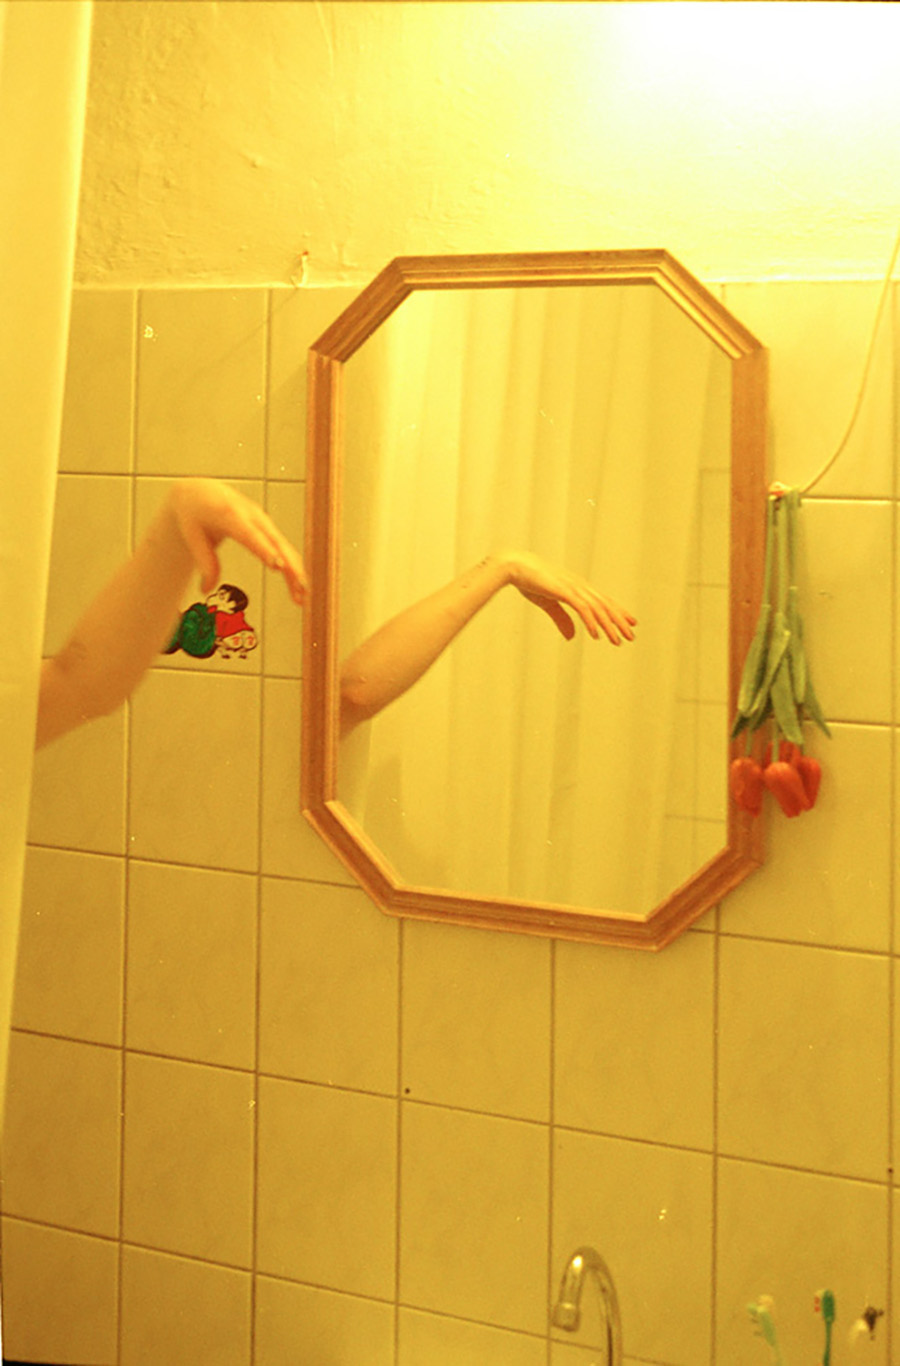 young, women, emerging, contemporary photography, photograph, wall art,